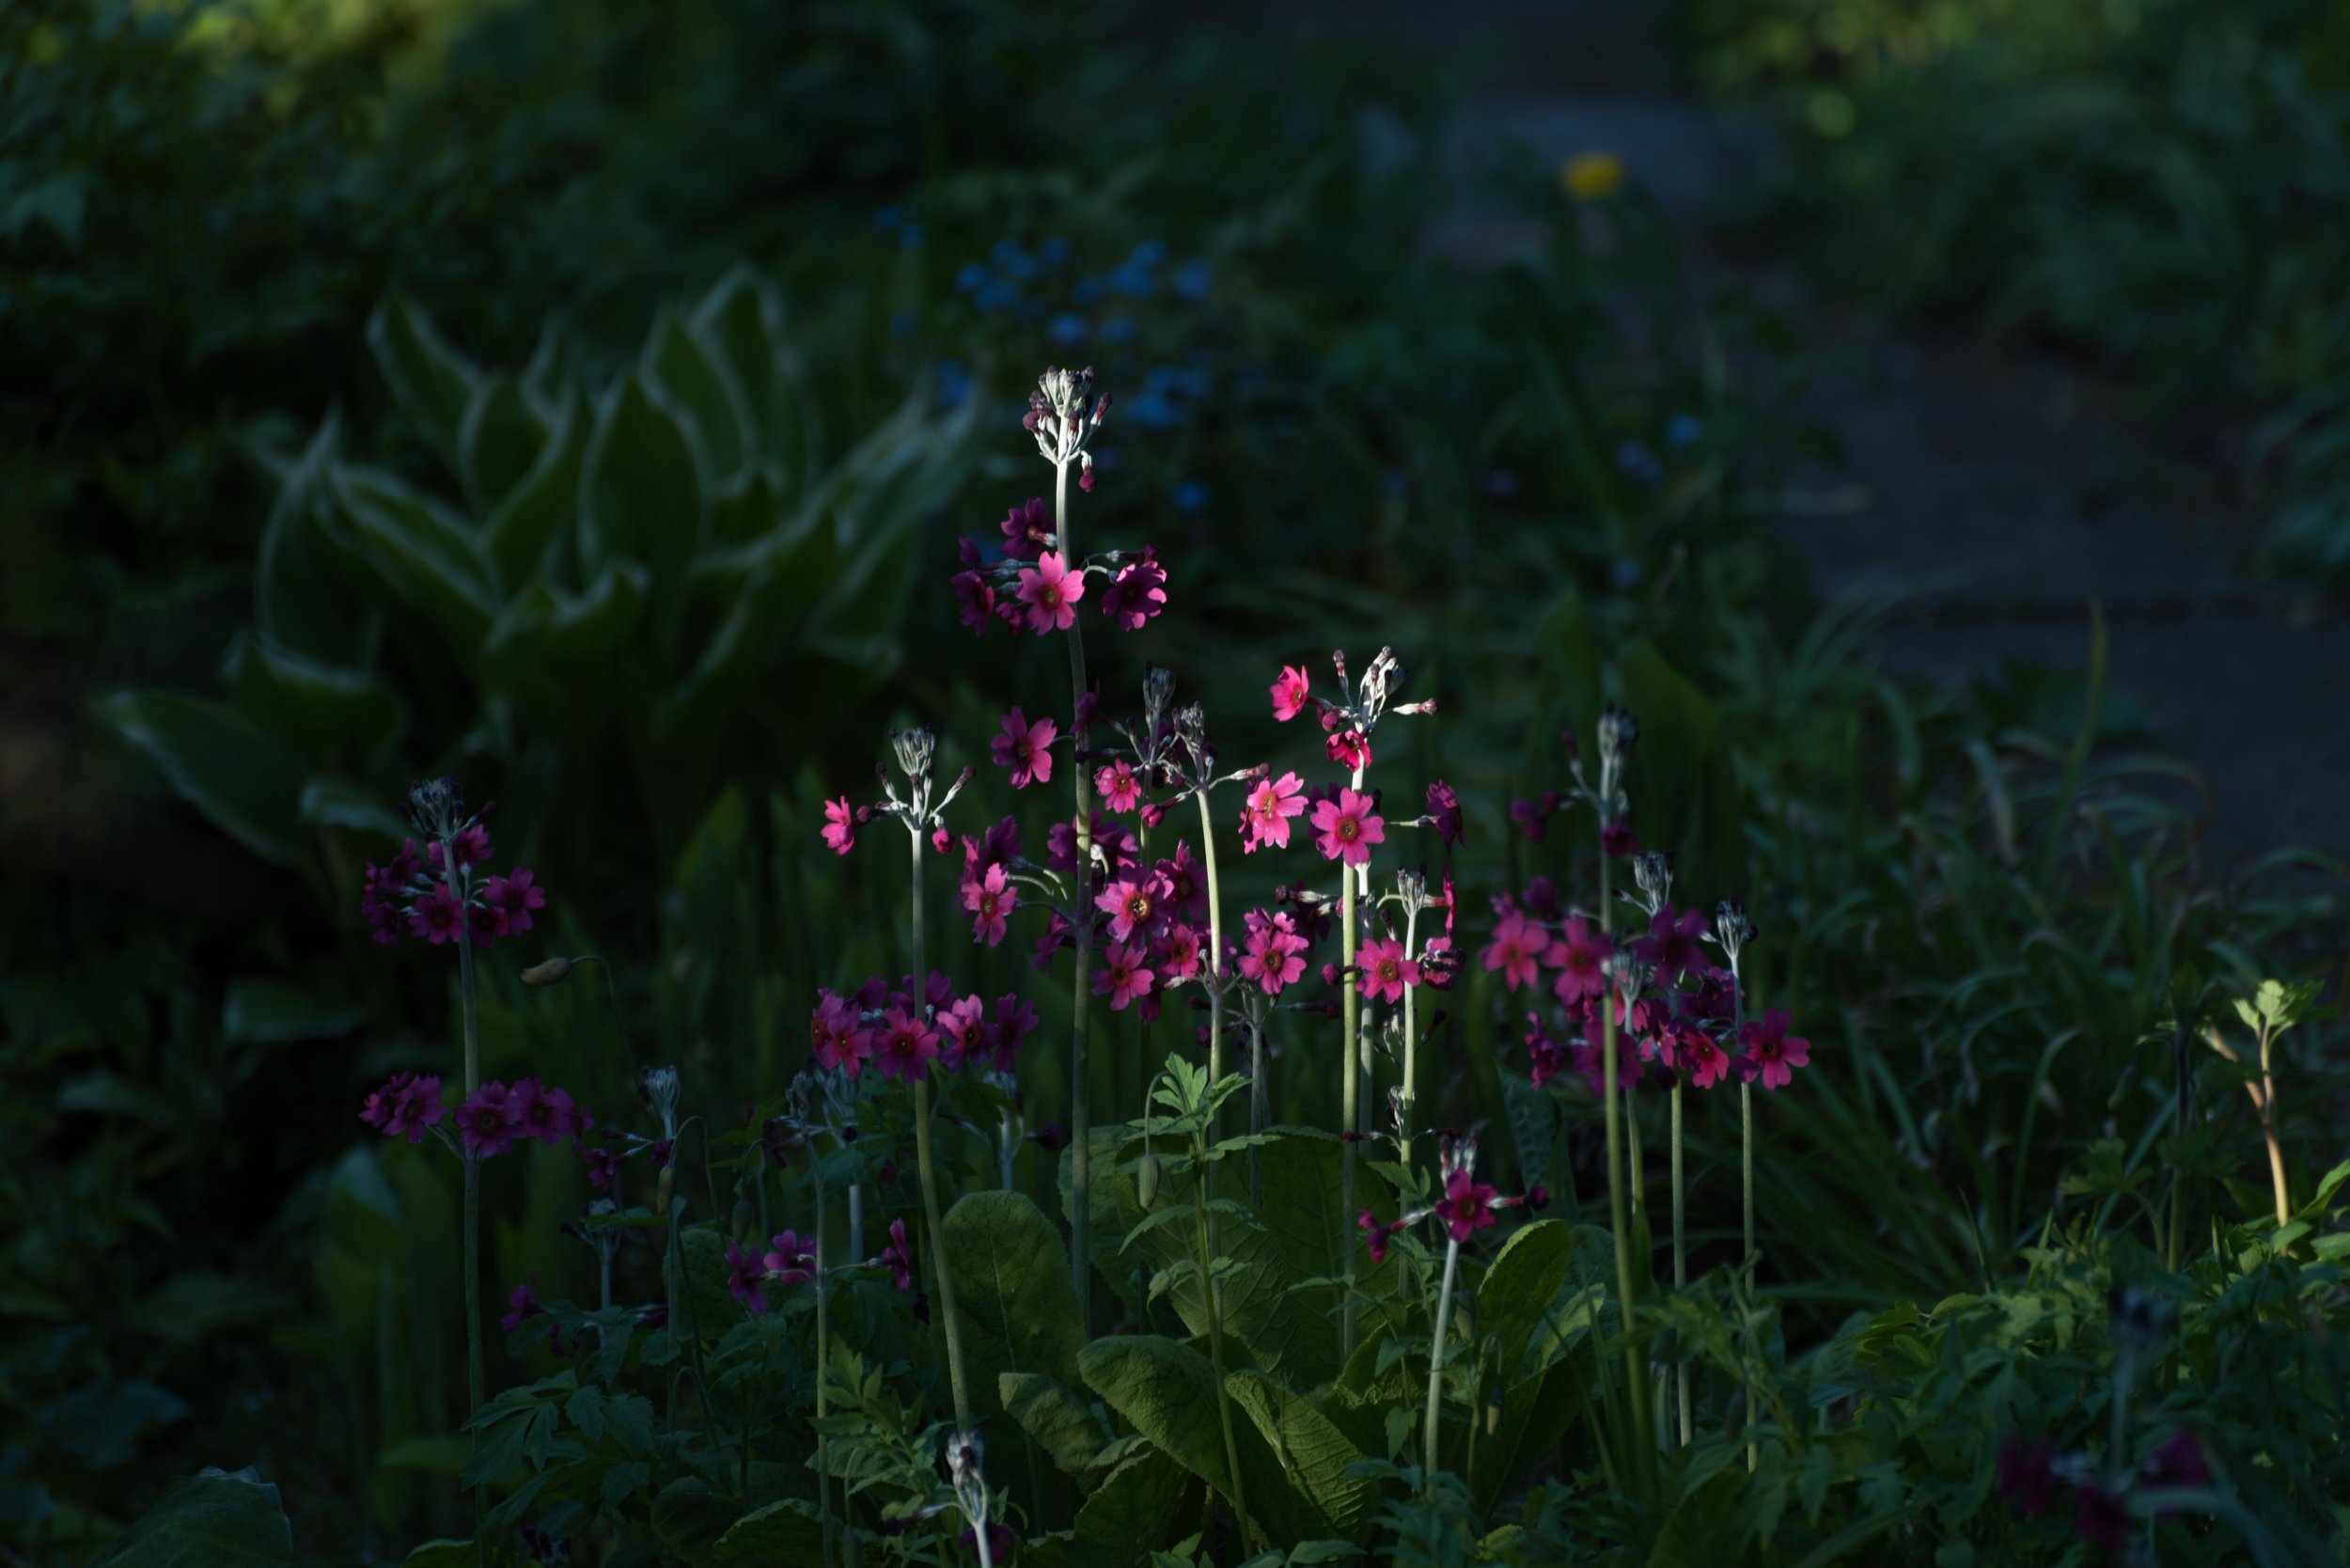 Candelabra primula's in the late afternoon sun